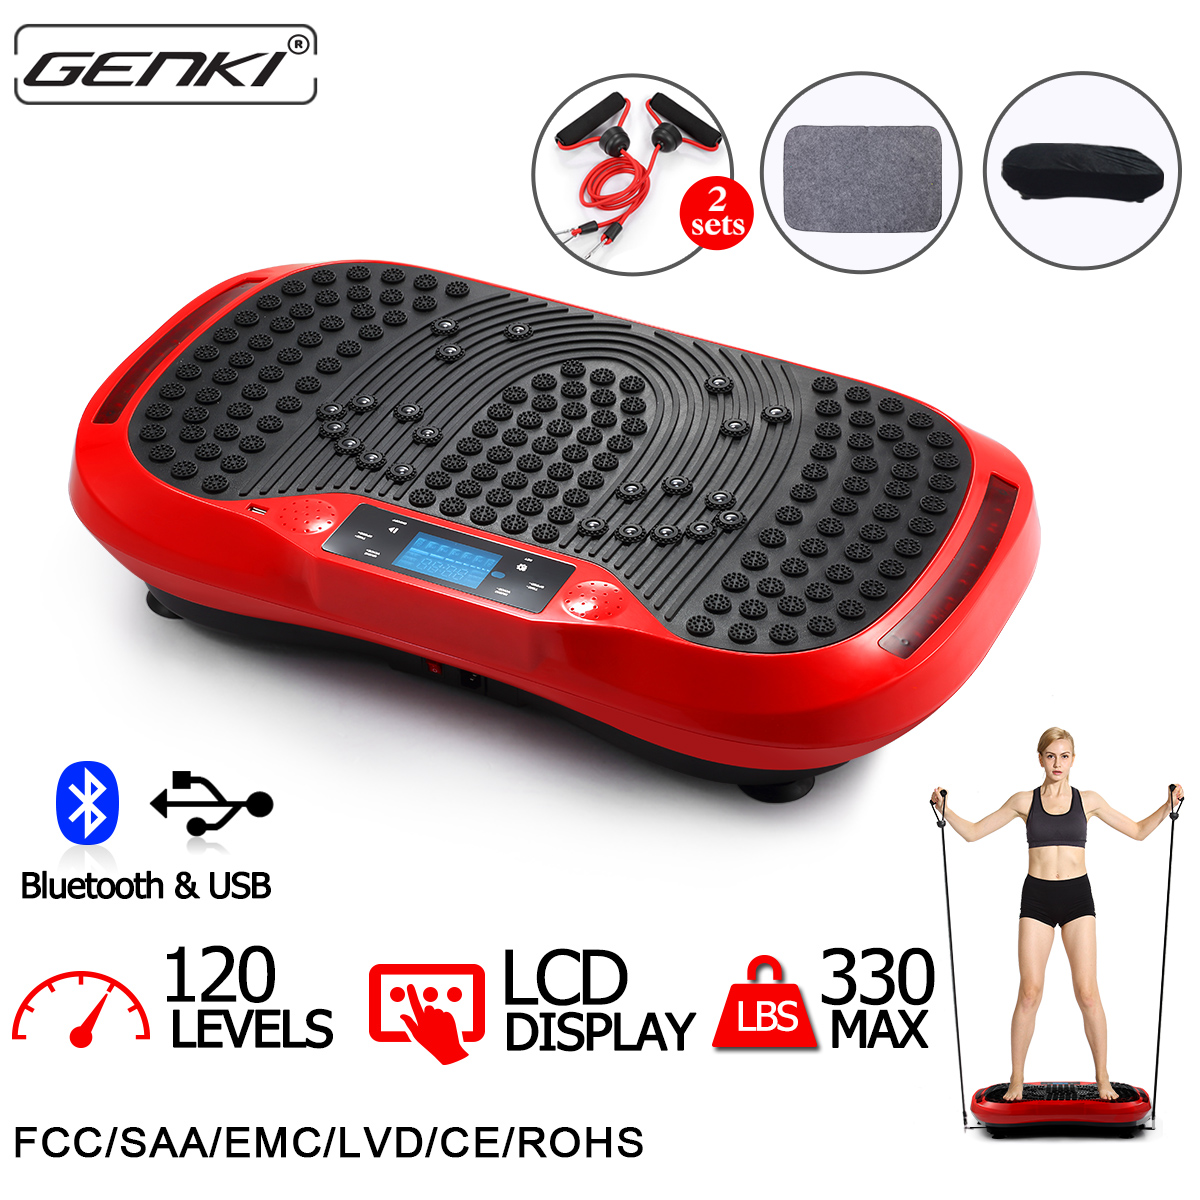 GENKI Vibration Platform Fitness Machine Bluetooth MP3 Player Whole Body Exercise with Straps and Romote Control, 120 Levels, 5 Auto Programmes